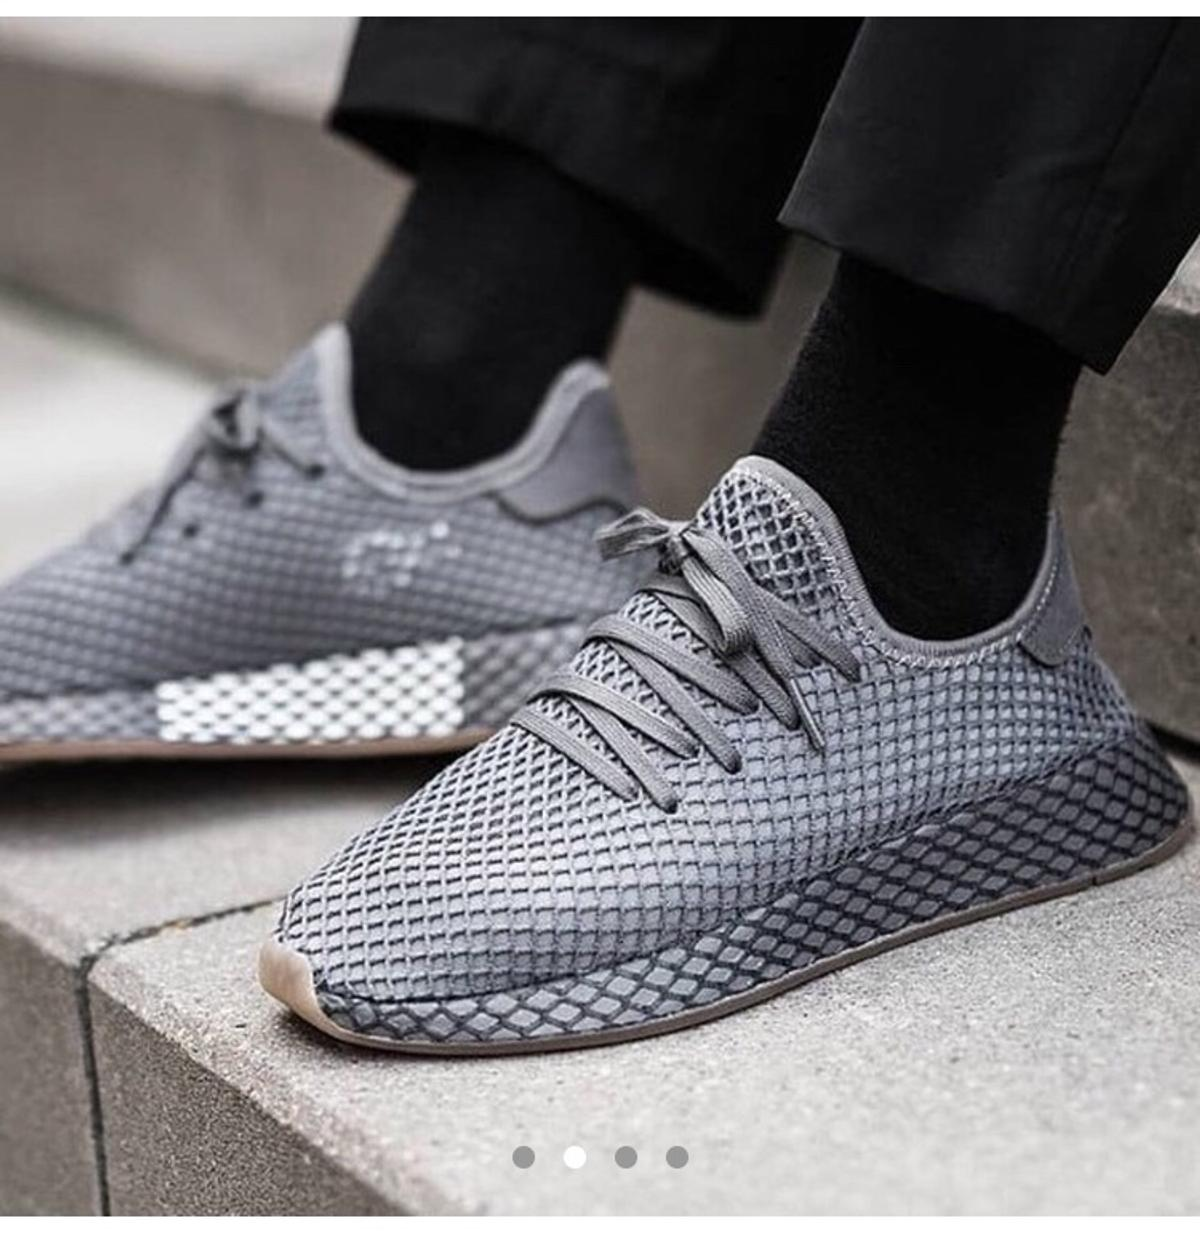 6dcdc5e9a87a Adidas Deerupt size uk 3 Grey in N1 London for £30.00 for sale - Shpock